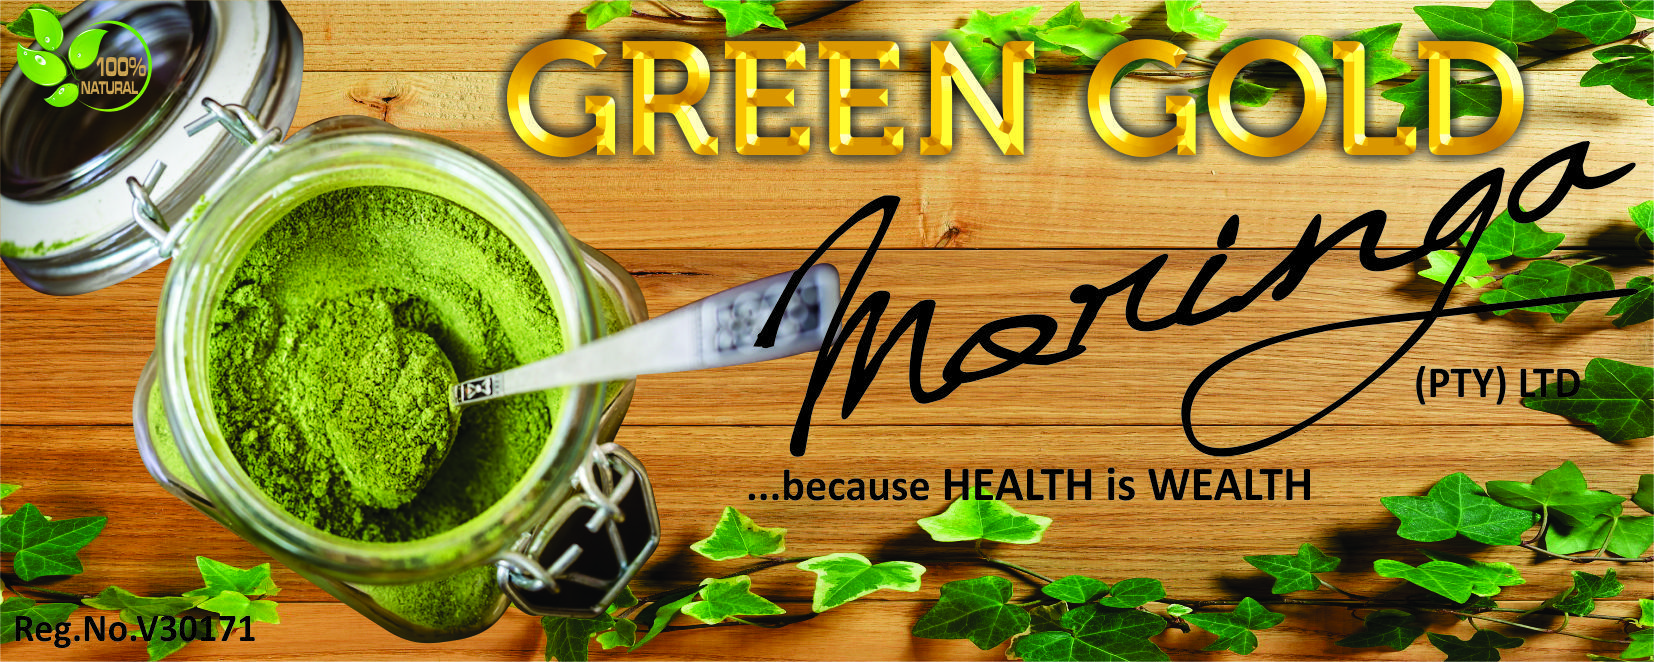 Green Gold Moringa products South Africa